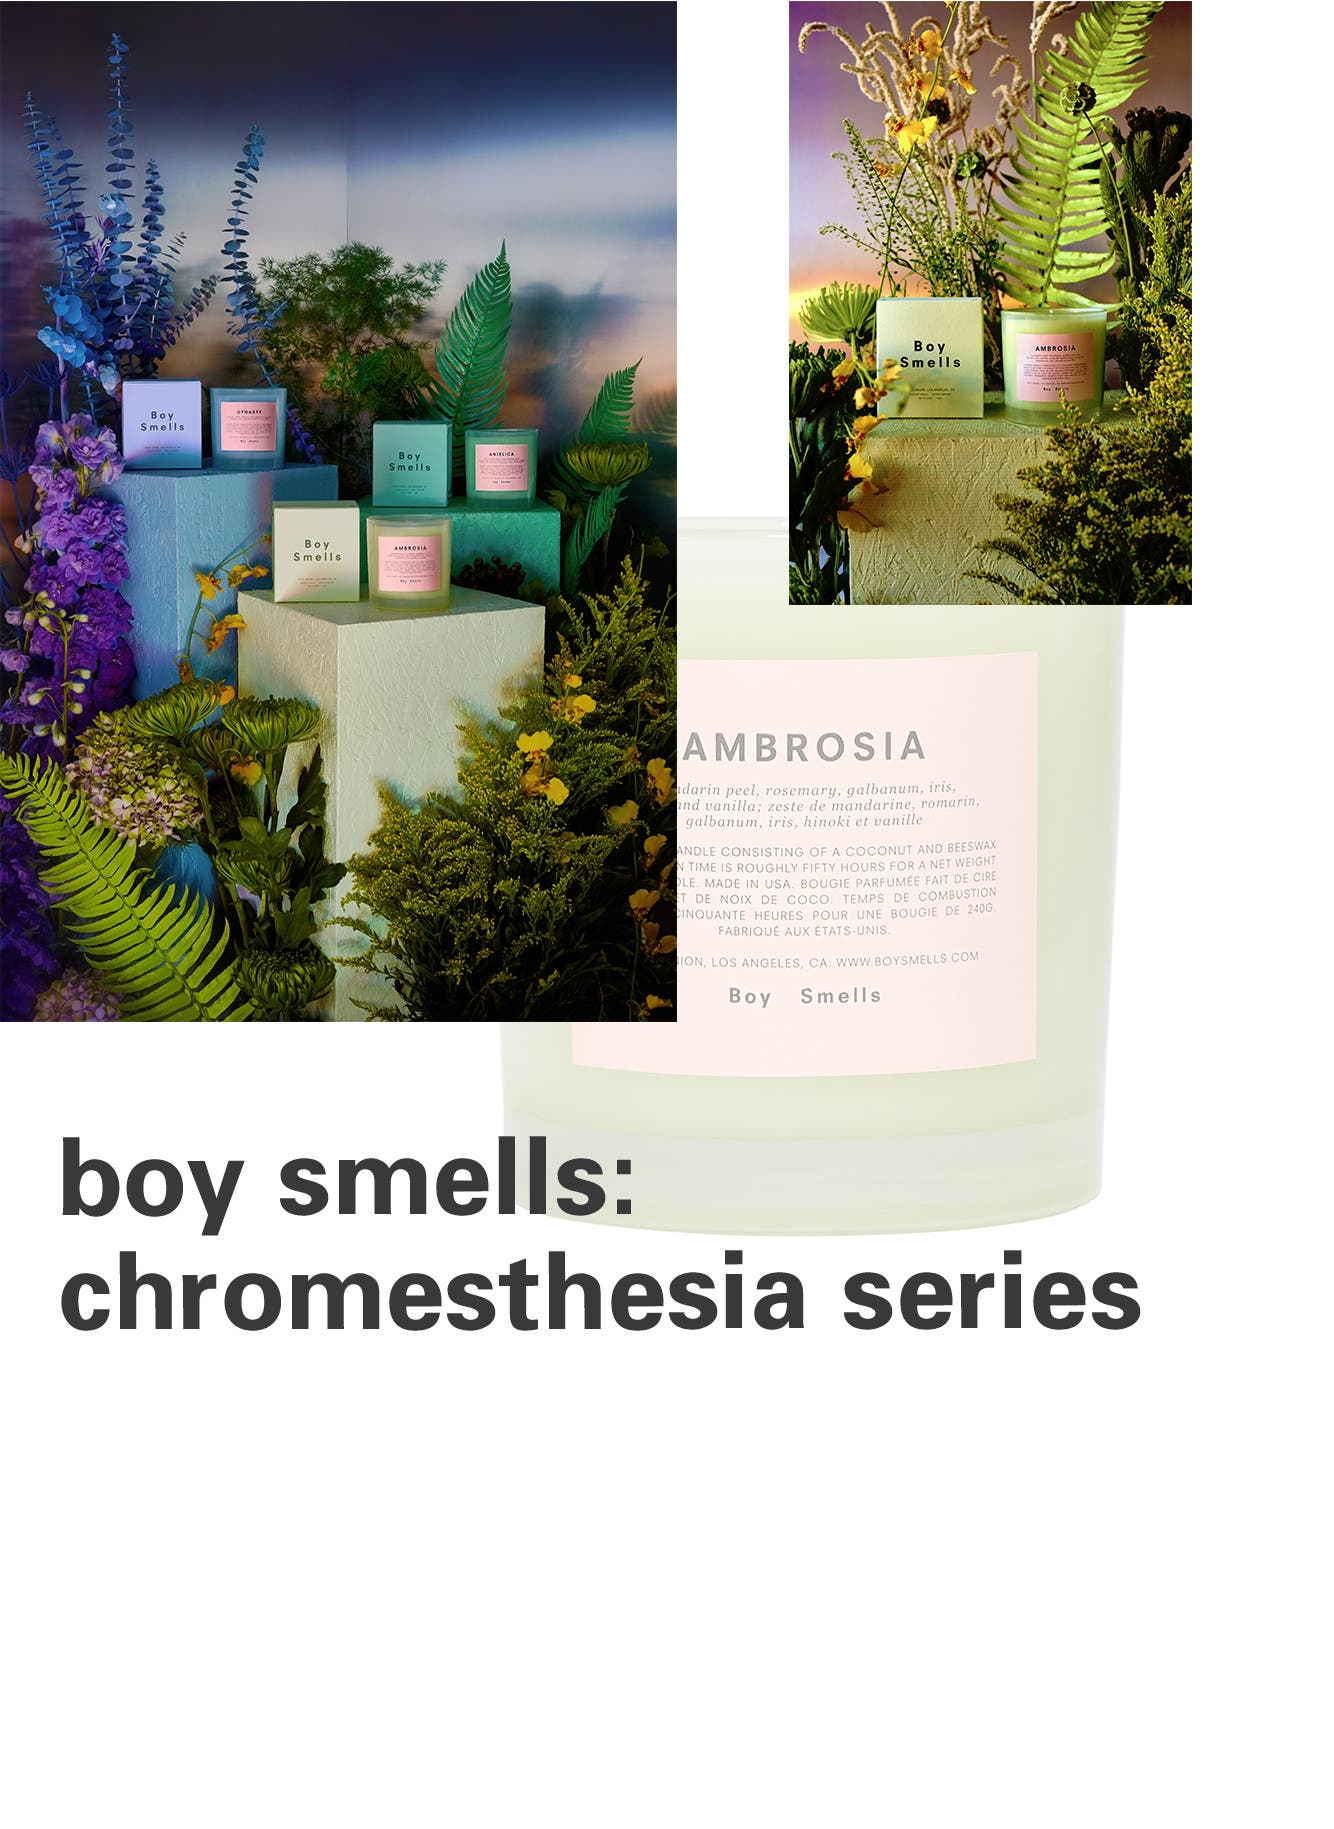 Boy Smells chromesthesia candles.